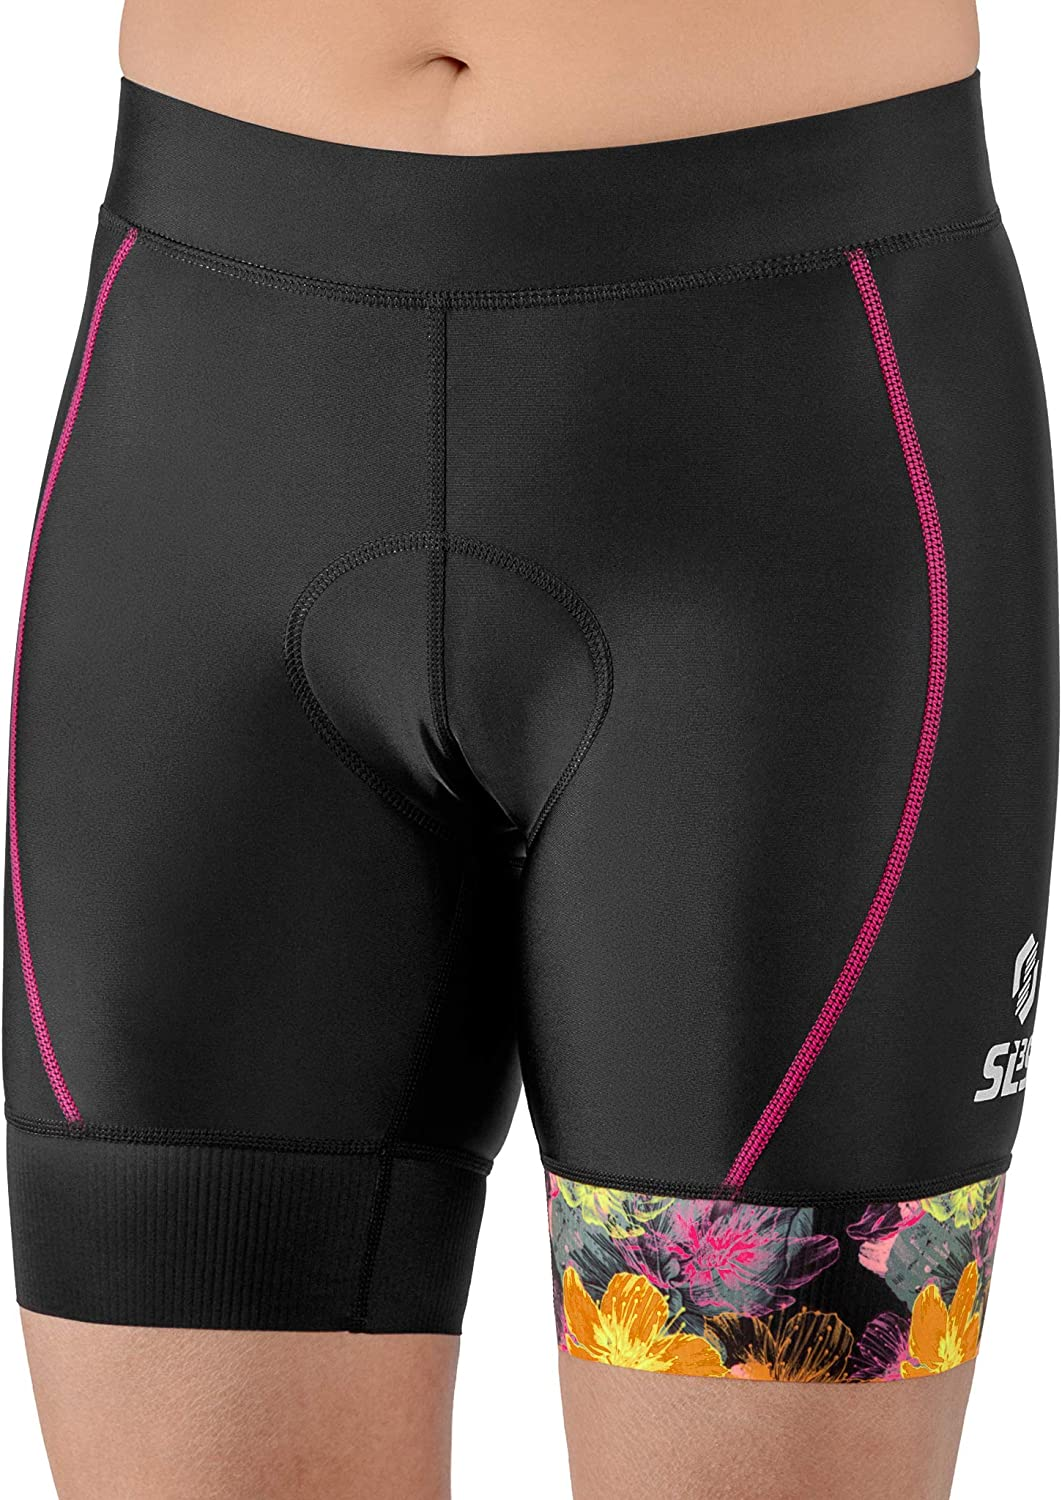 SLS3 Tri National products Shorts for Women in C Womens Triathlon Super Over item handling